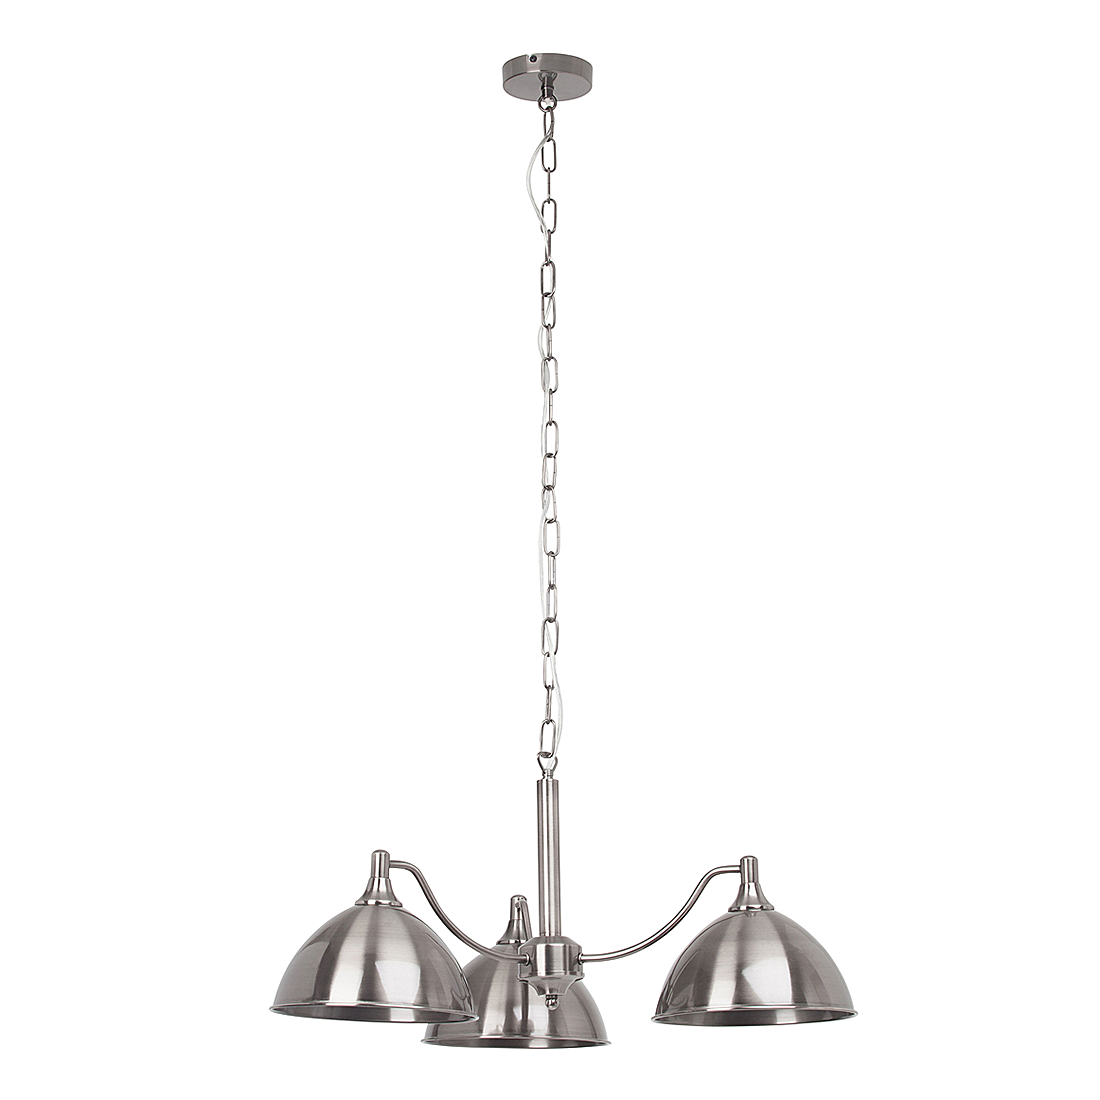 Brilliant c belis plafonnier 2 lumi res l26cm lustre for Suspension 3 lumieres